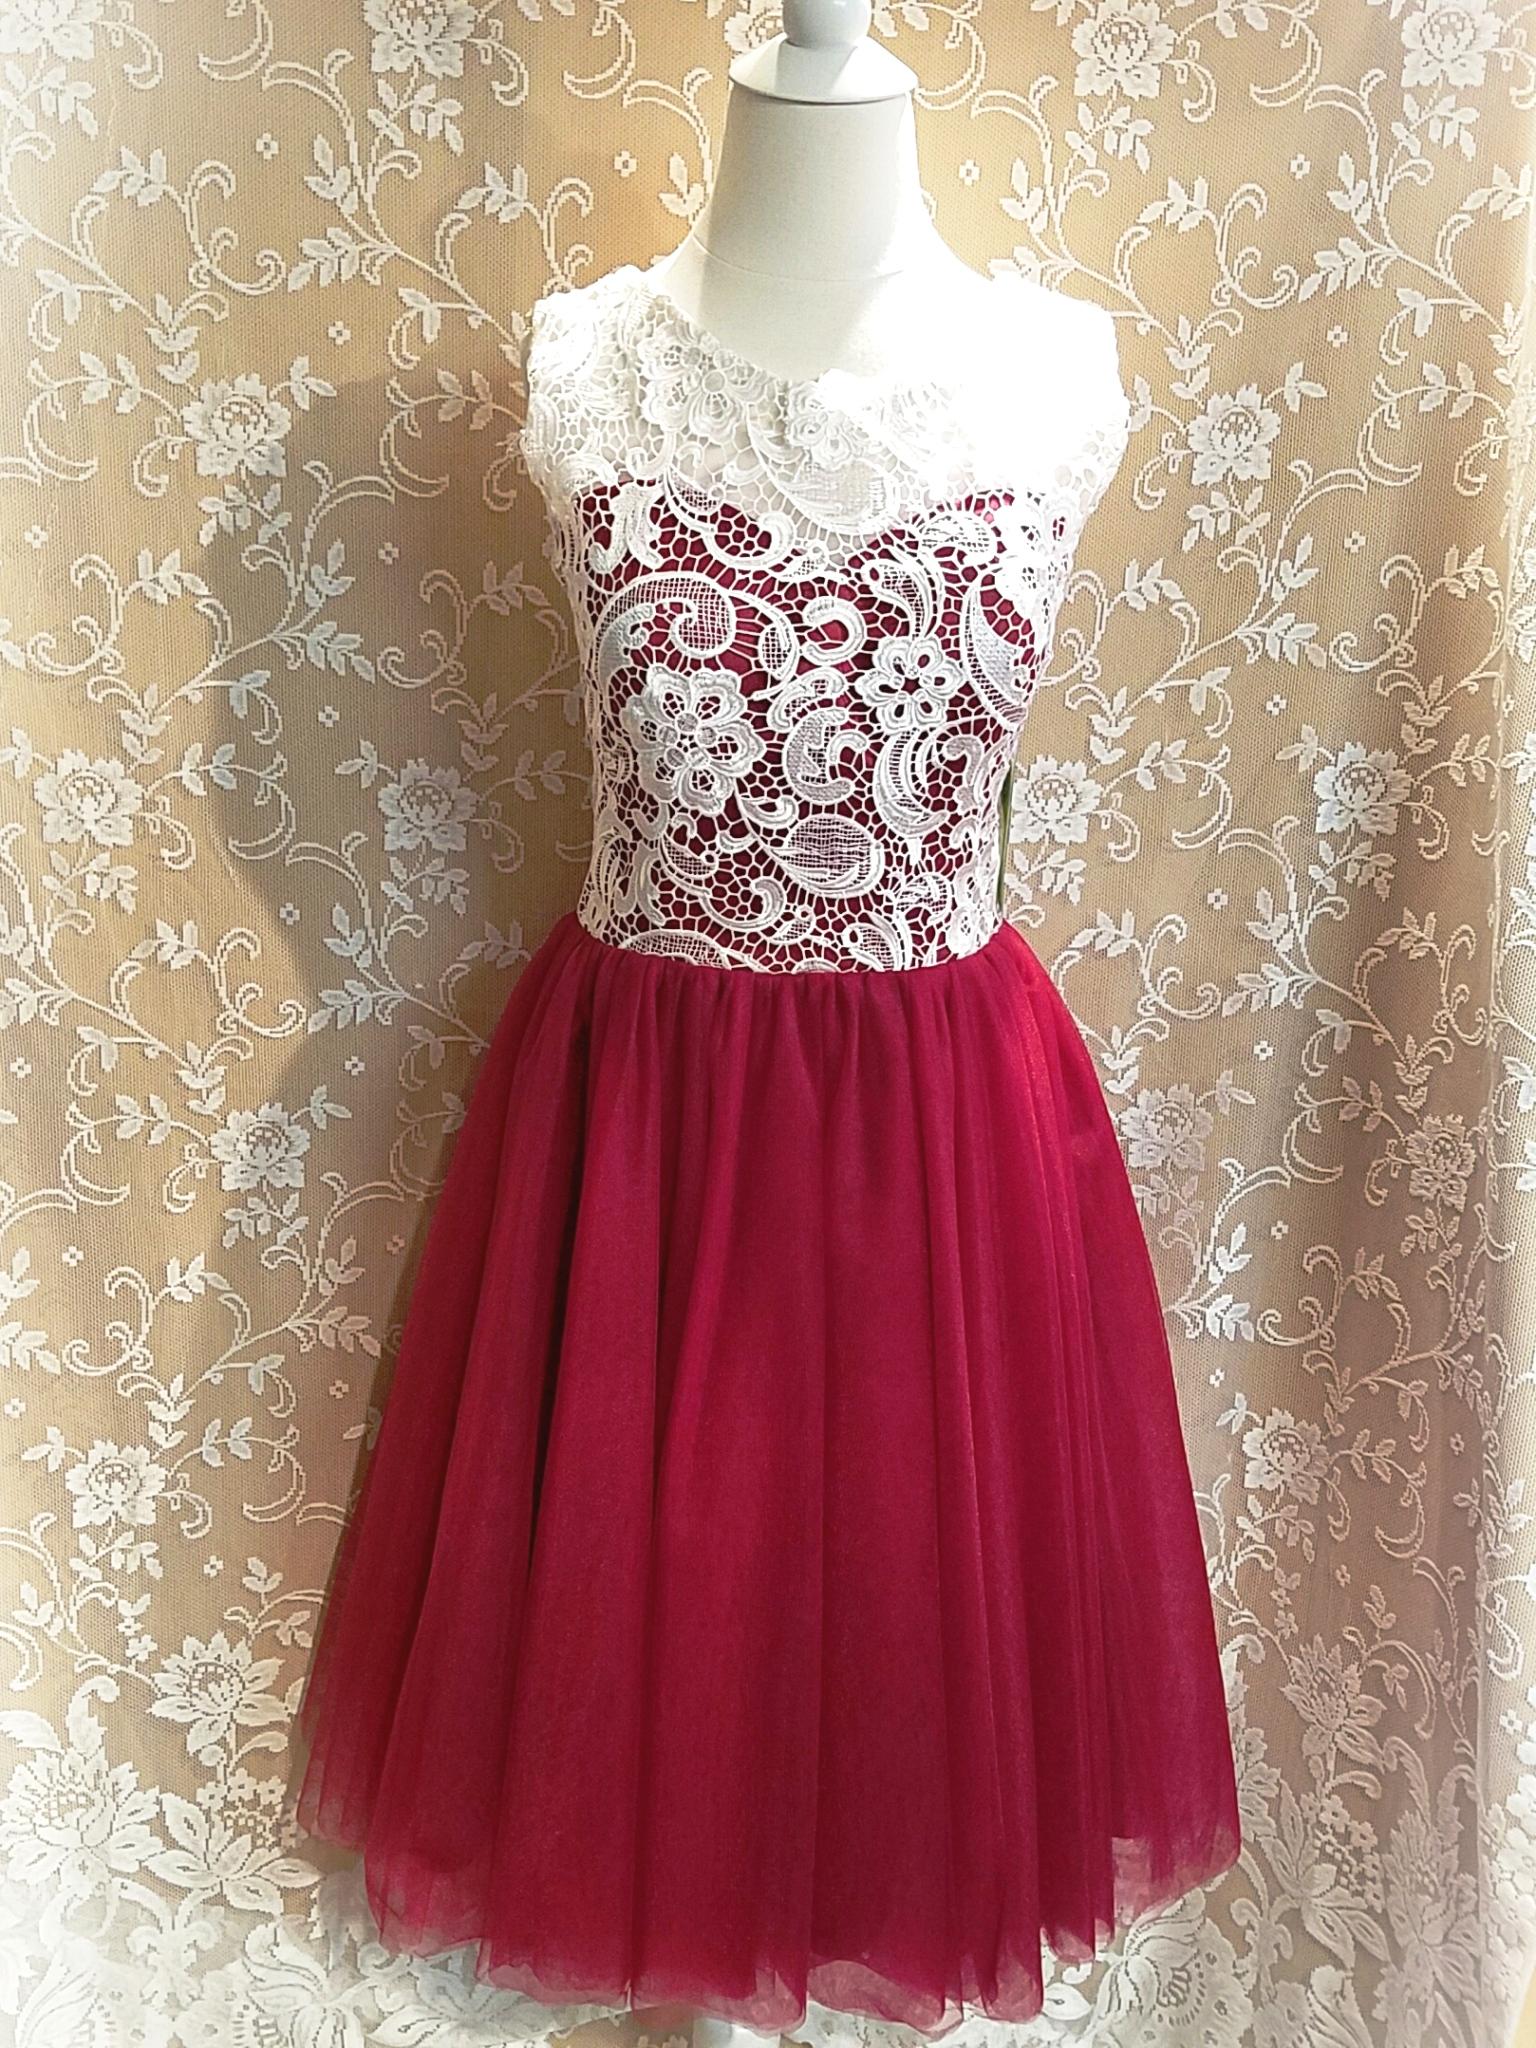 08-0215   Size 8